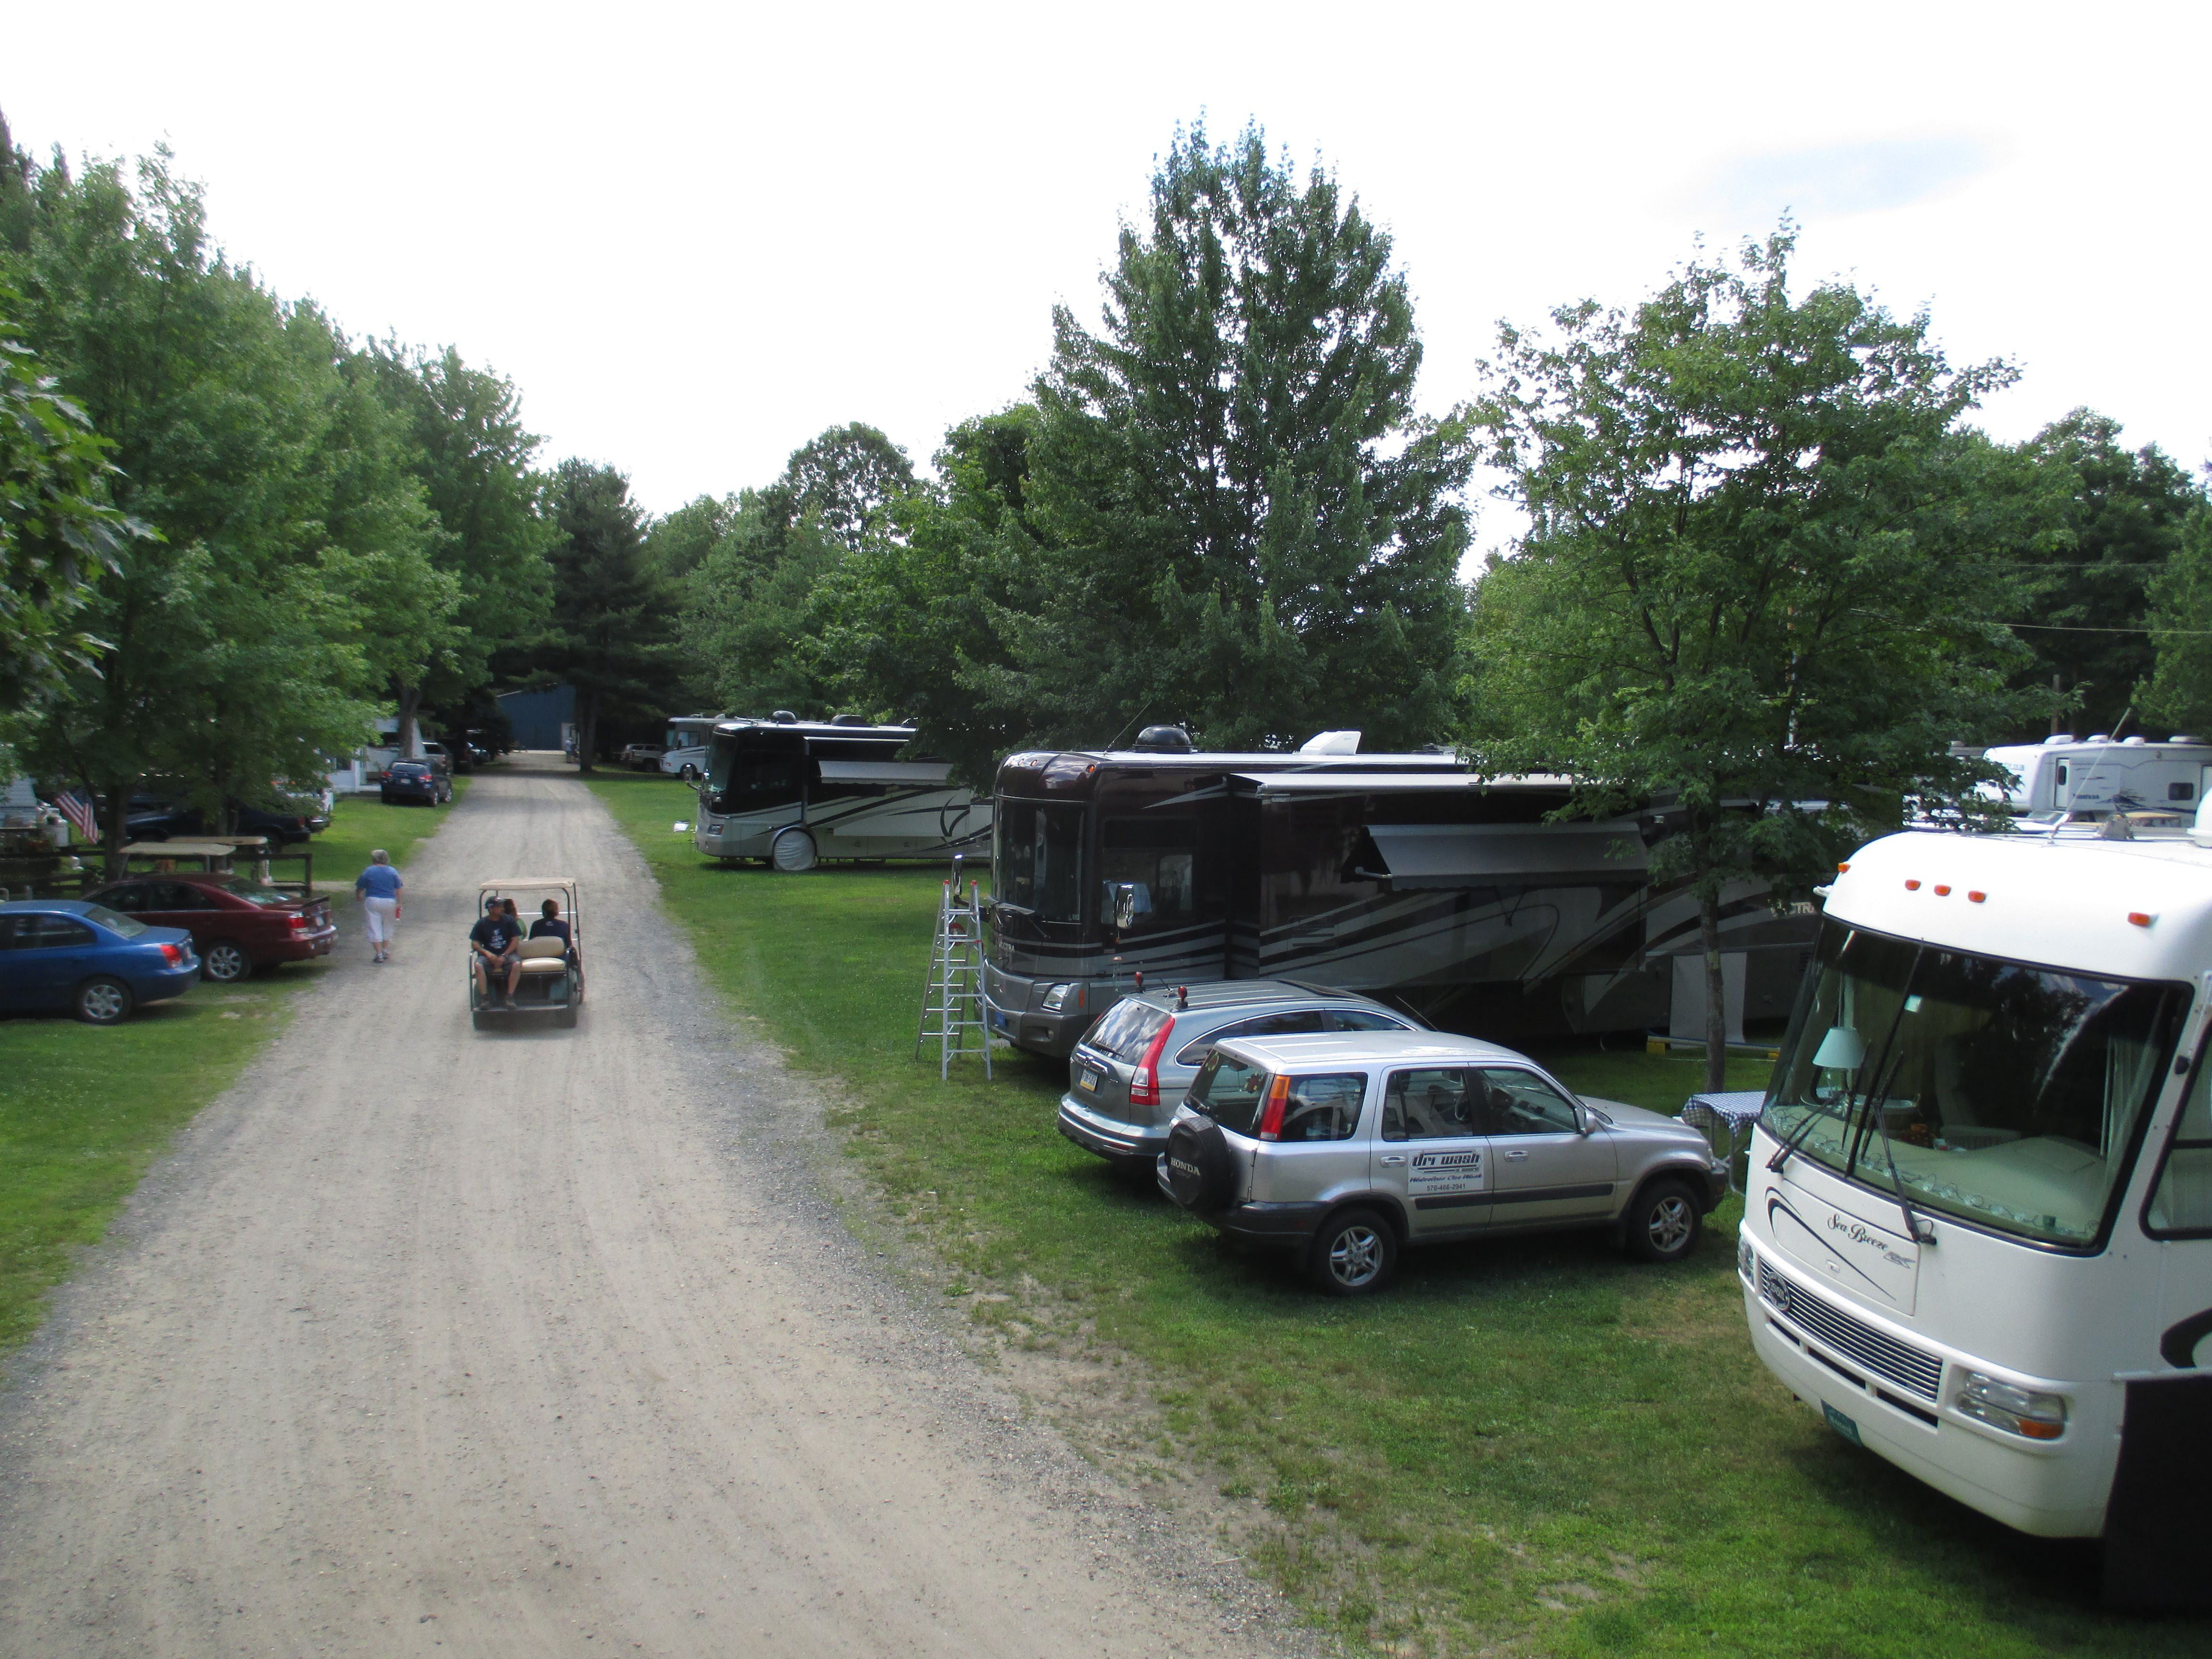 full hookup camping in kelowna , home, , farm country rv park, a quiet and idyllic camping retreat, is centrally situated between okanagan lake and wood lake, minutes from both downtown kelowna or winfield/lake countryour farm rv park is open to those who wish to experience the.